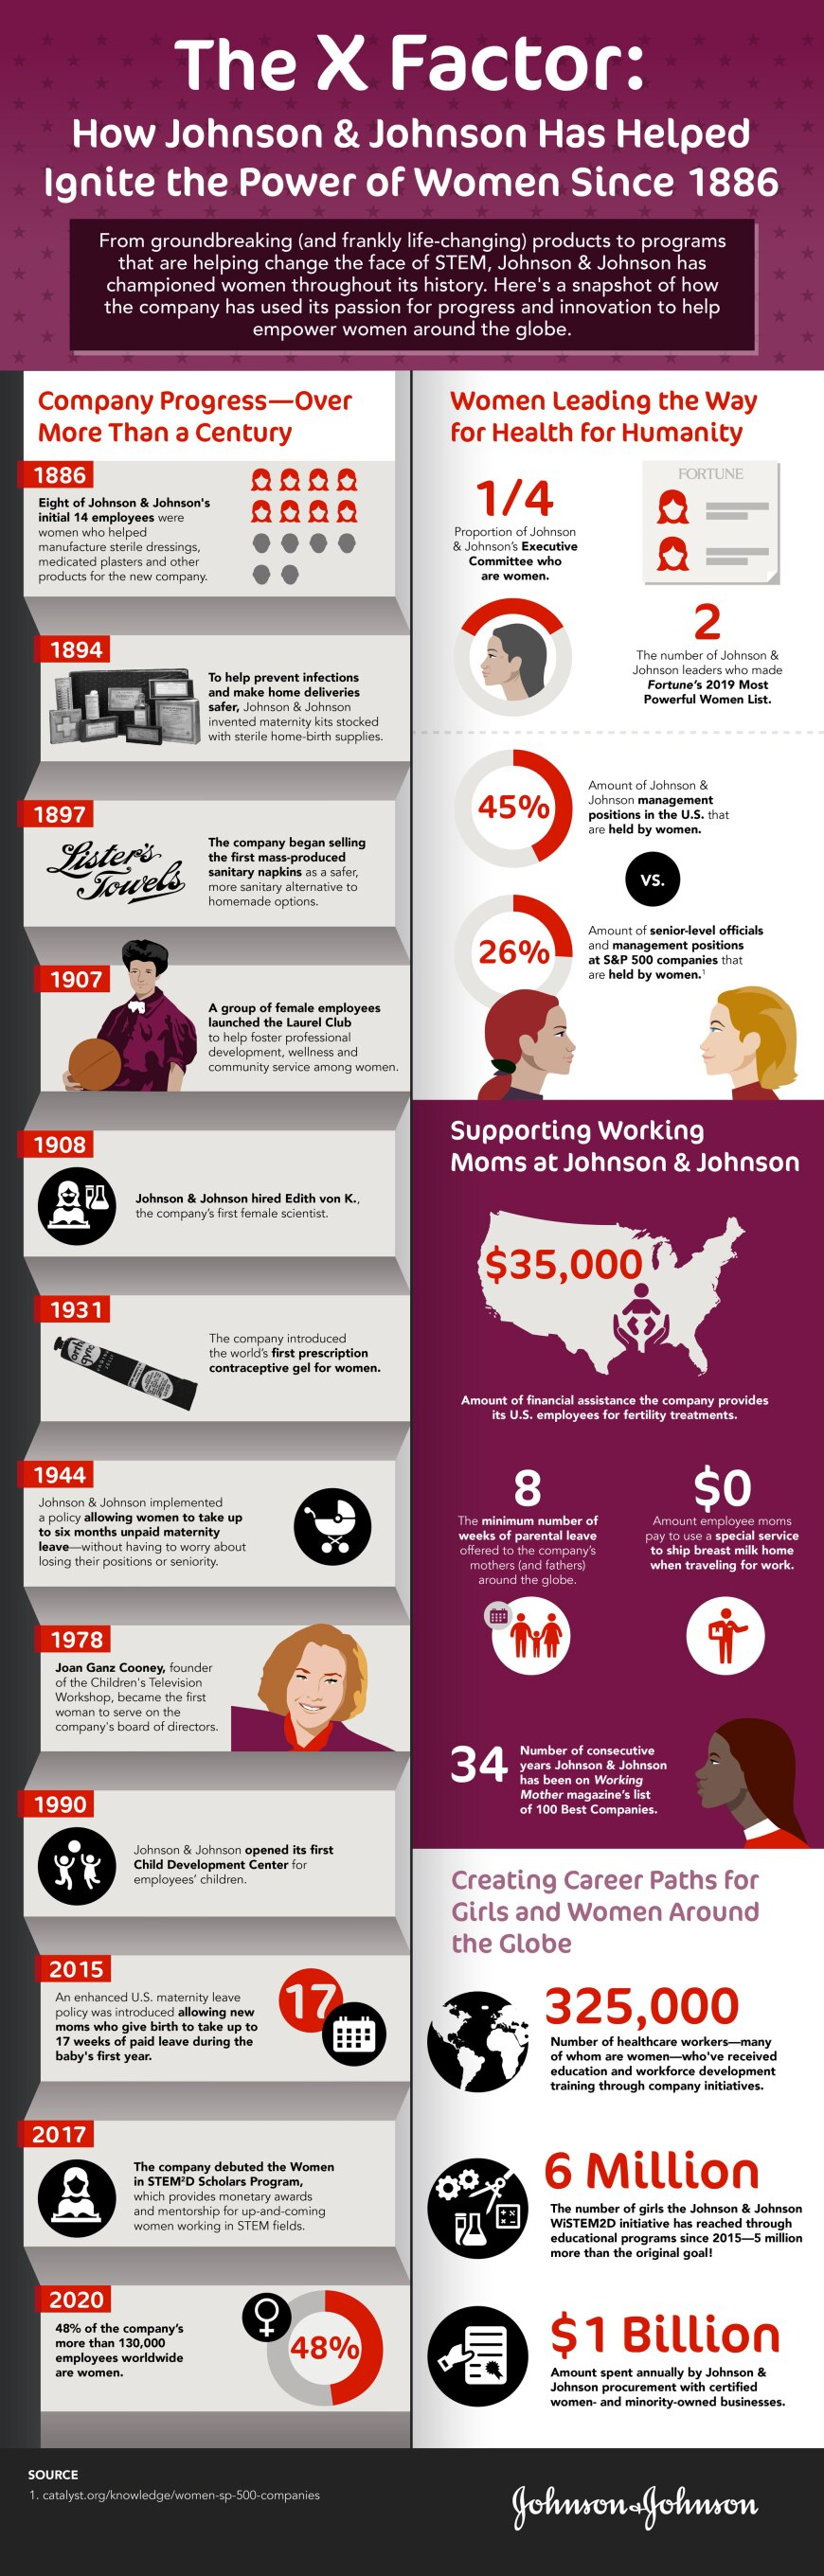 An infographic about how Johnson & Johnson has supported women through the years